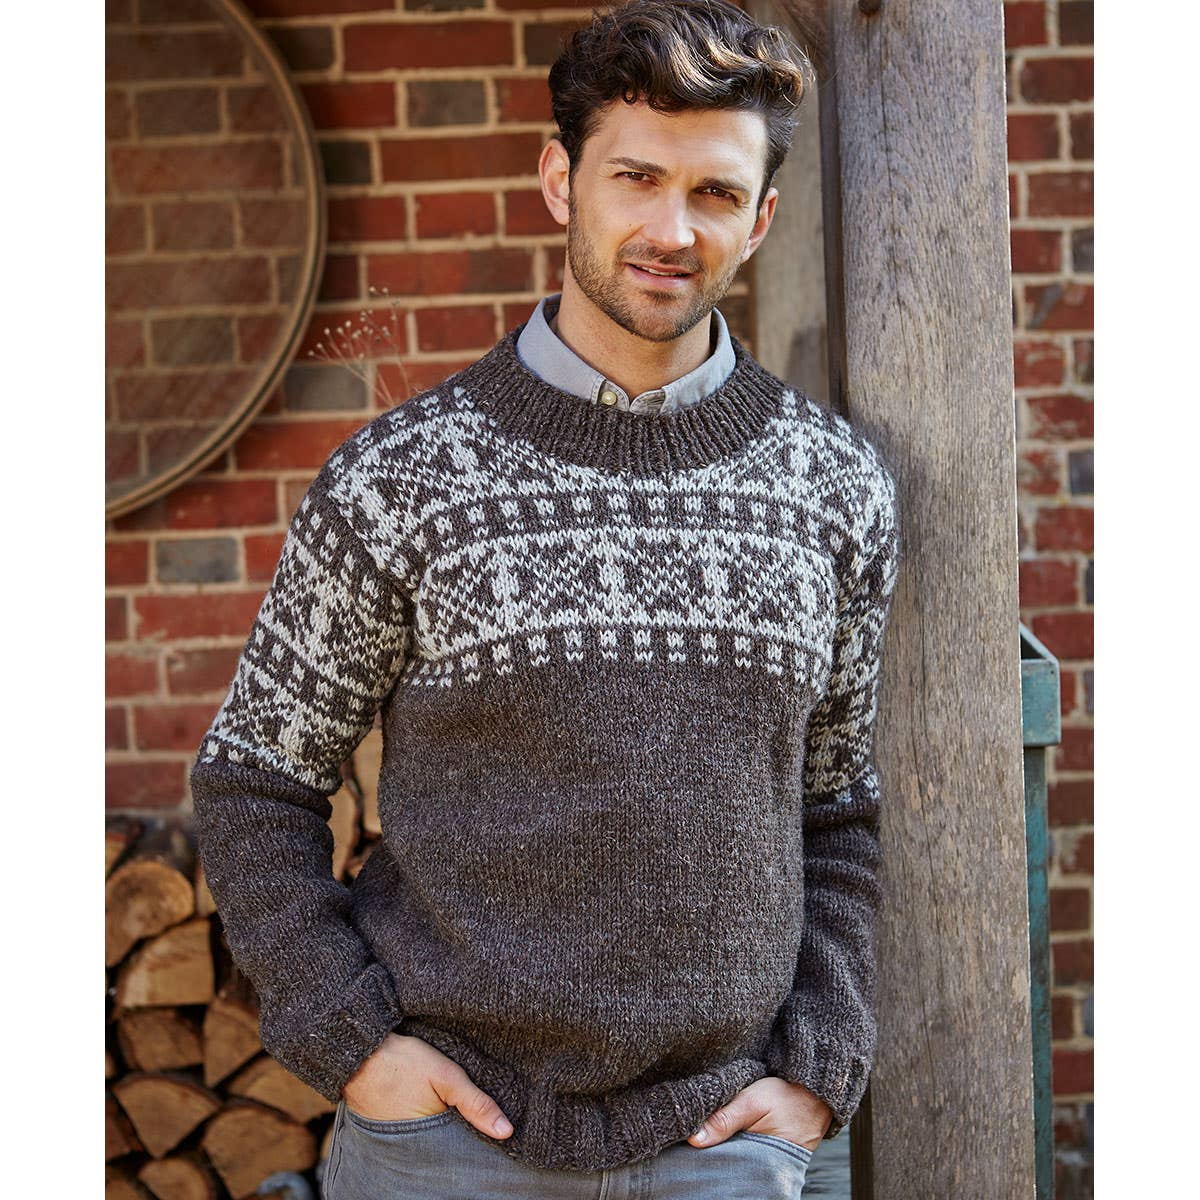 Men's Chunky Knit Fleece Lined Sweater (M/L)